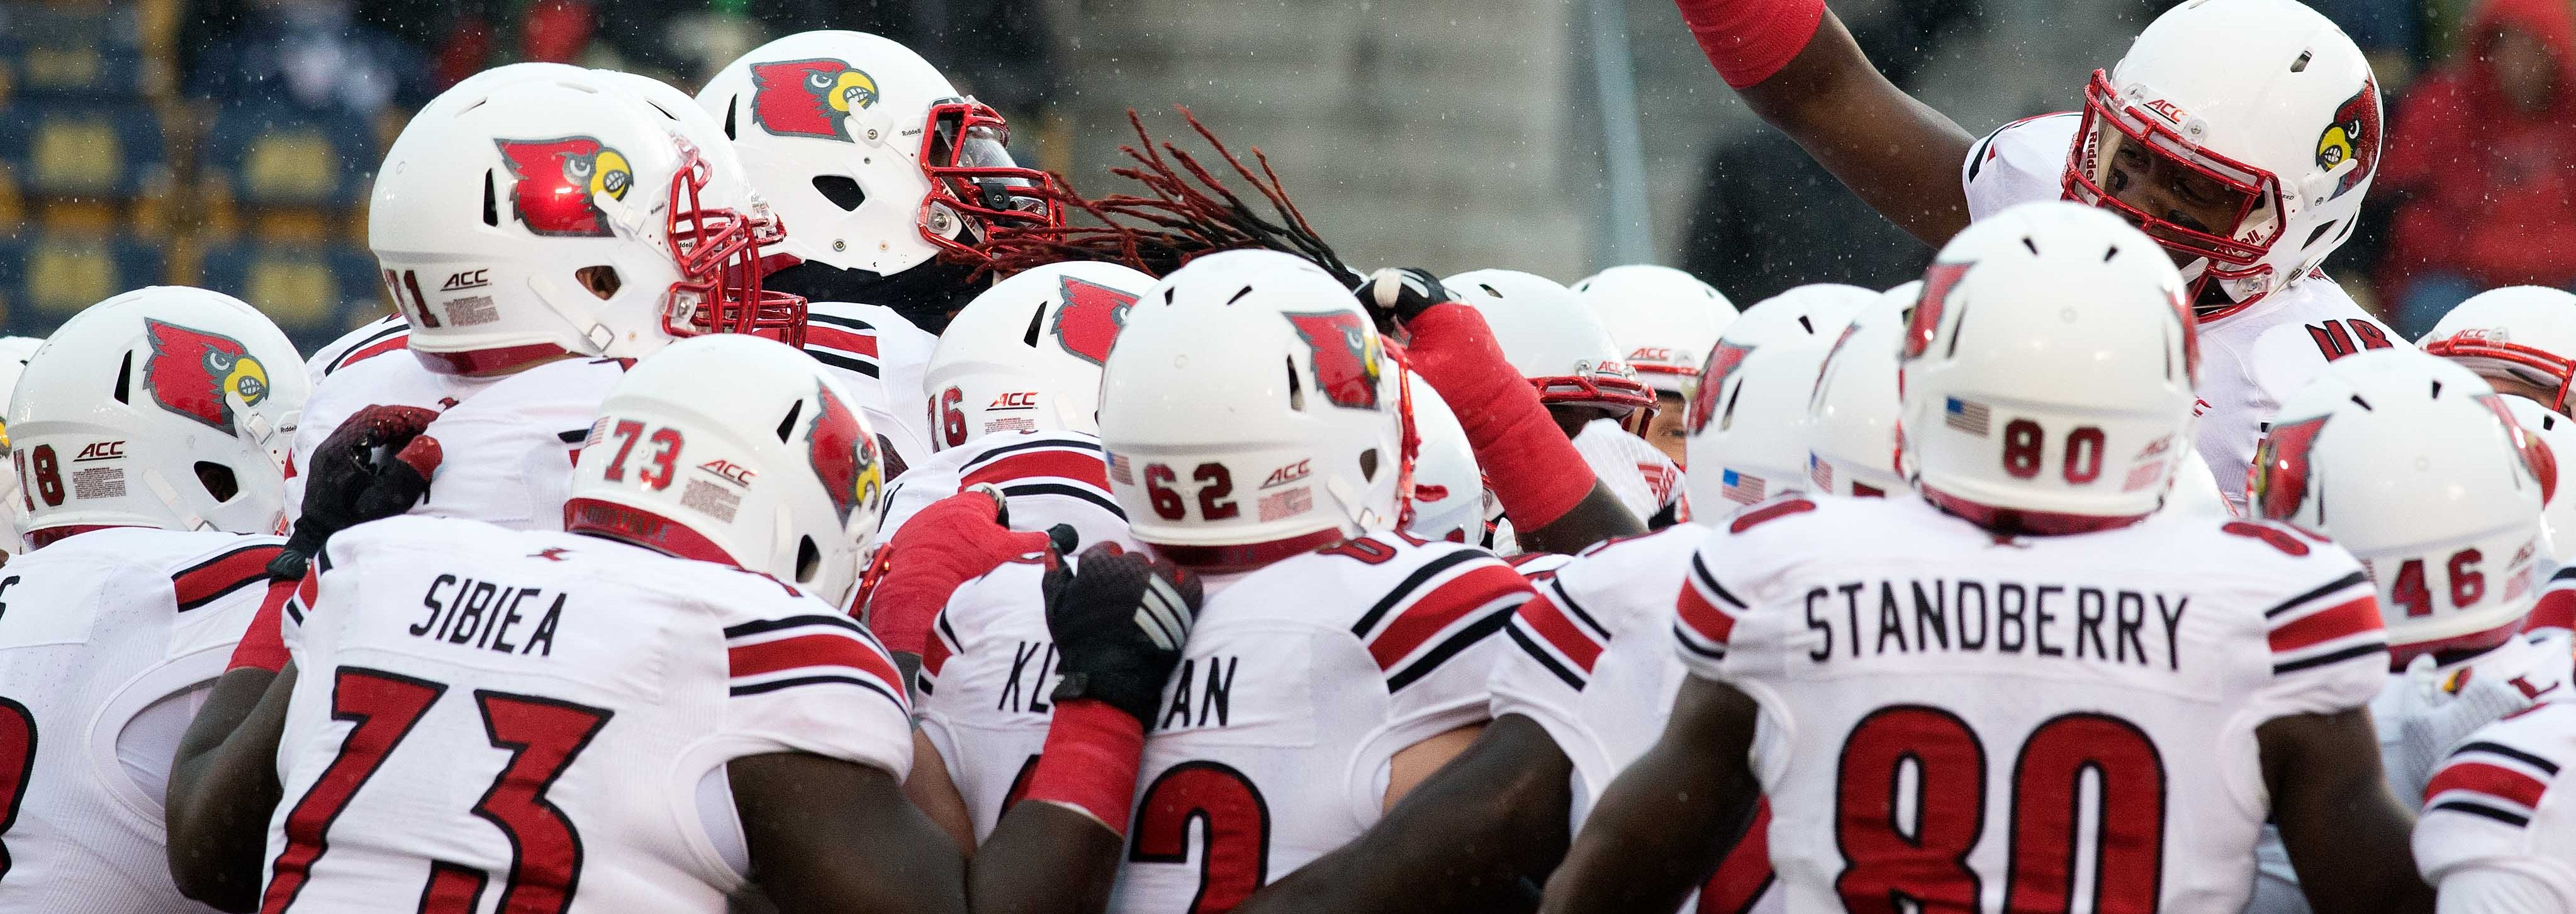 Louisville vs. Notre Dame 11-22-2014 Photo by Adam Creech Fitted